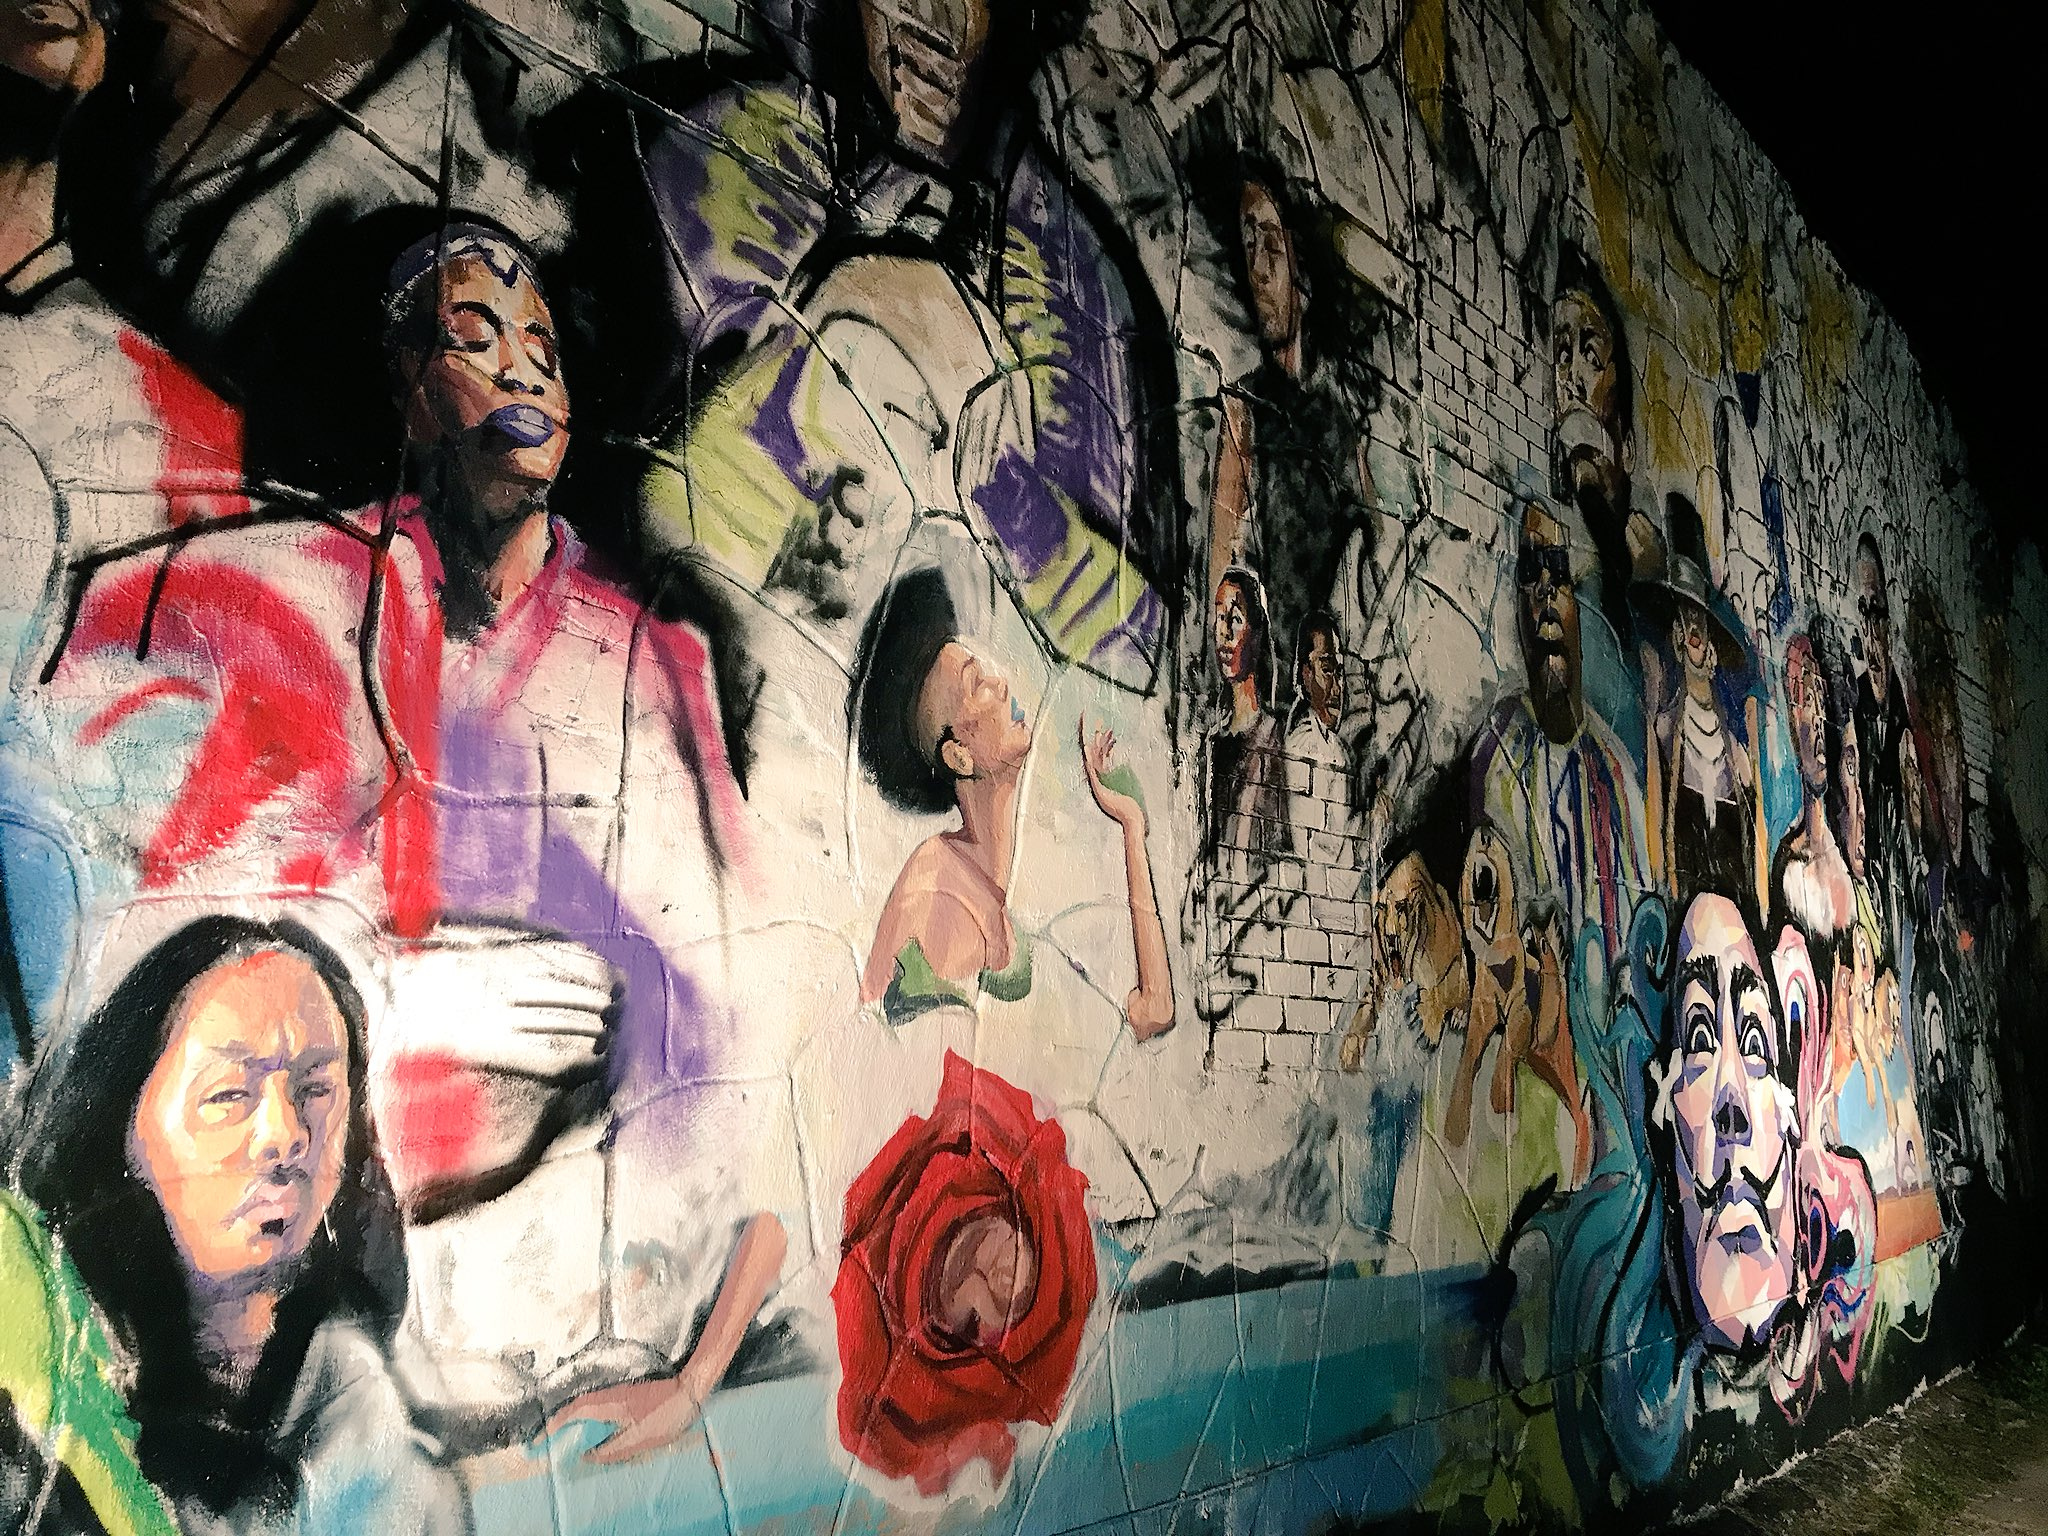 A mural at 12th and Chicon streets features prominent local and national musical and artistic icons (KXAN Photo/Todd Bailey)